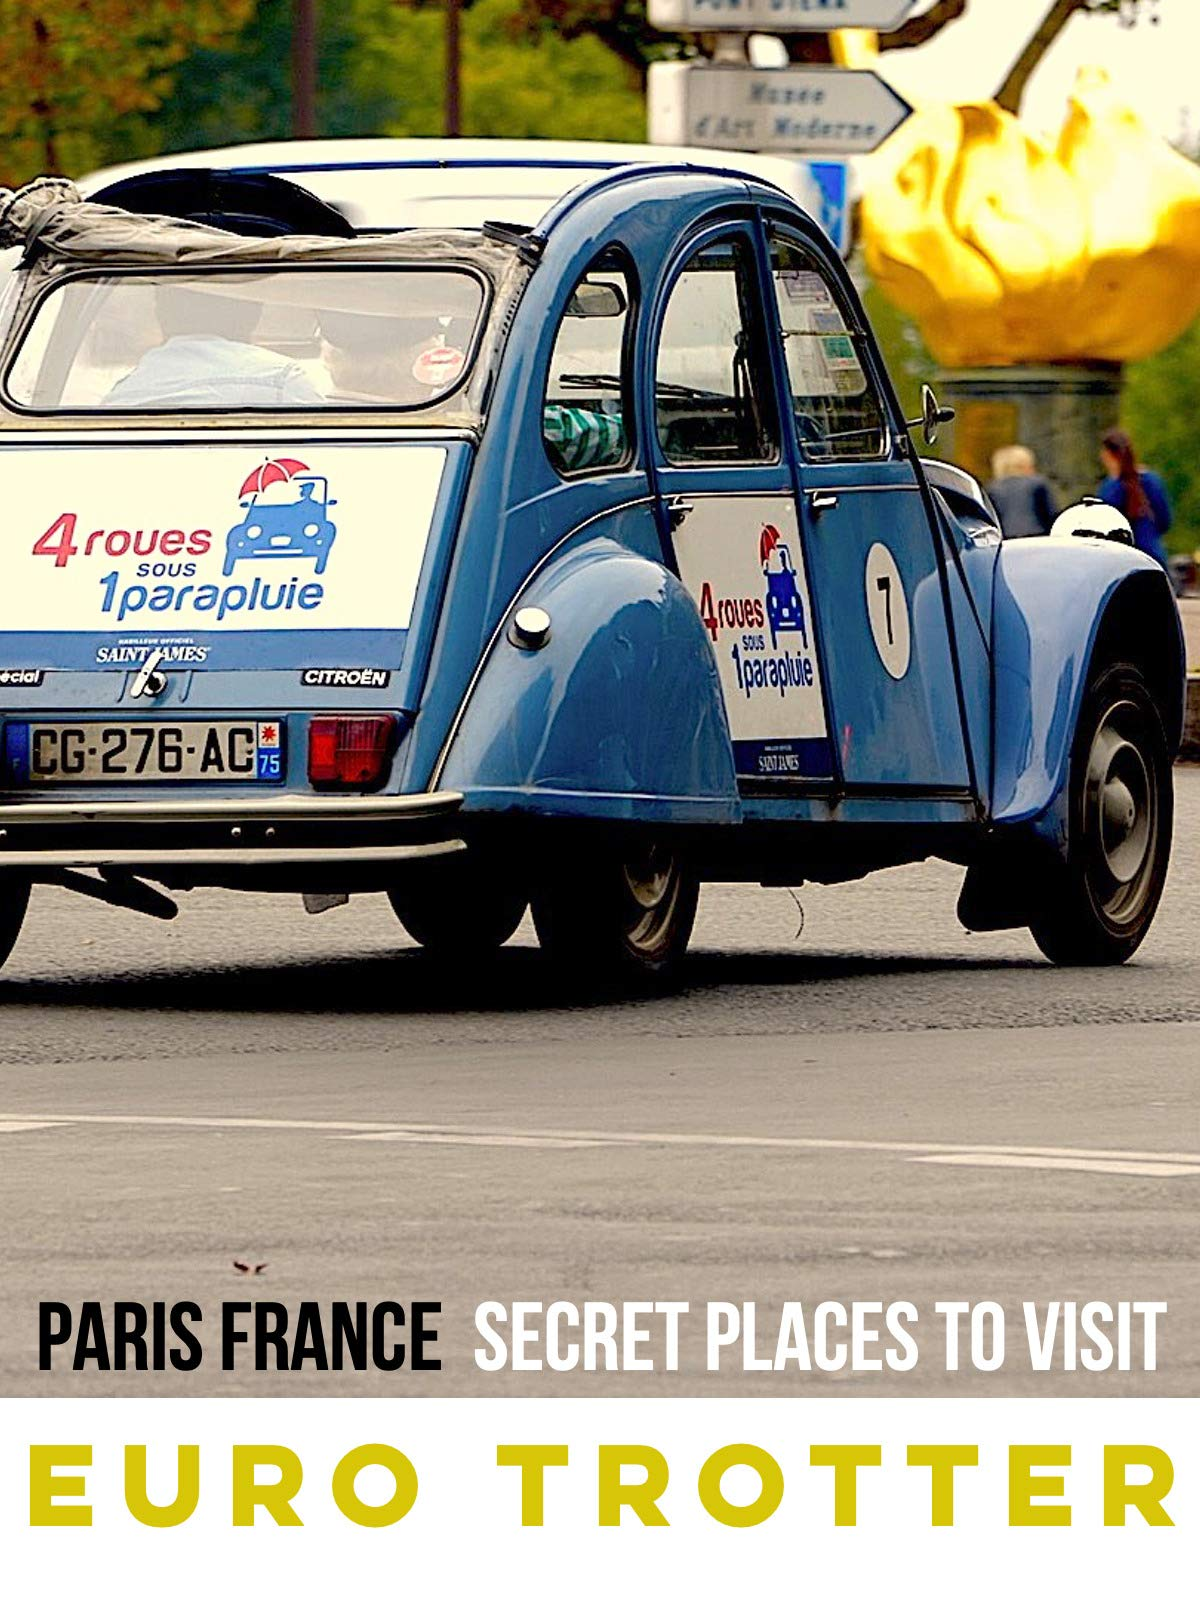 Paris Secret Places To Visit